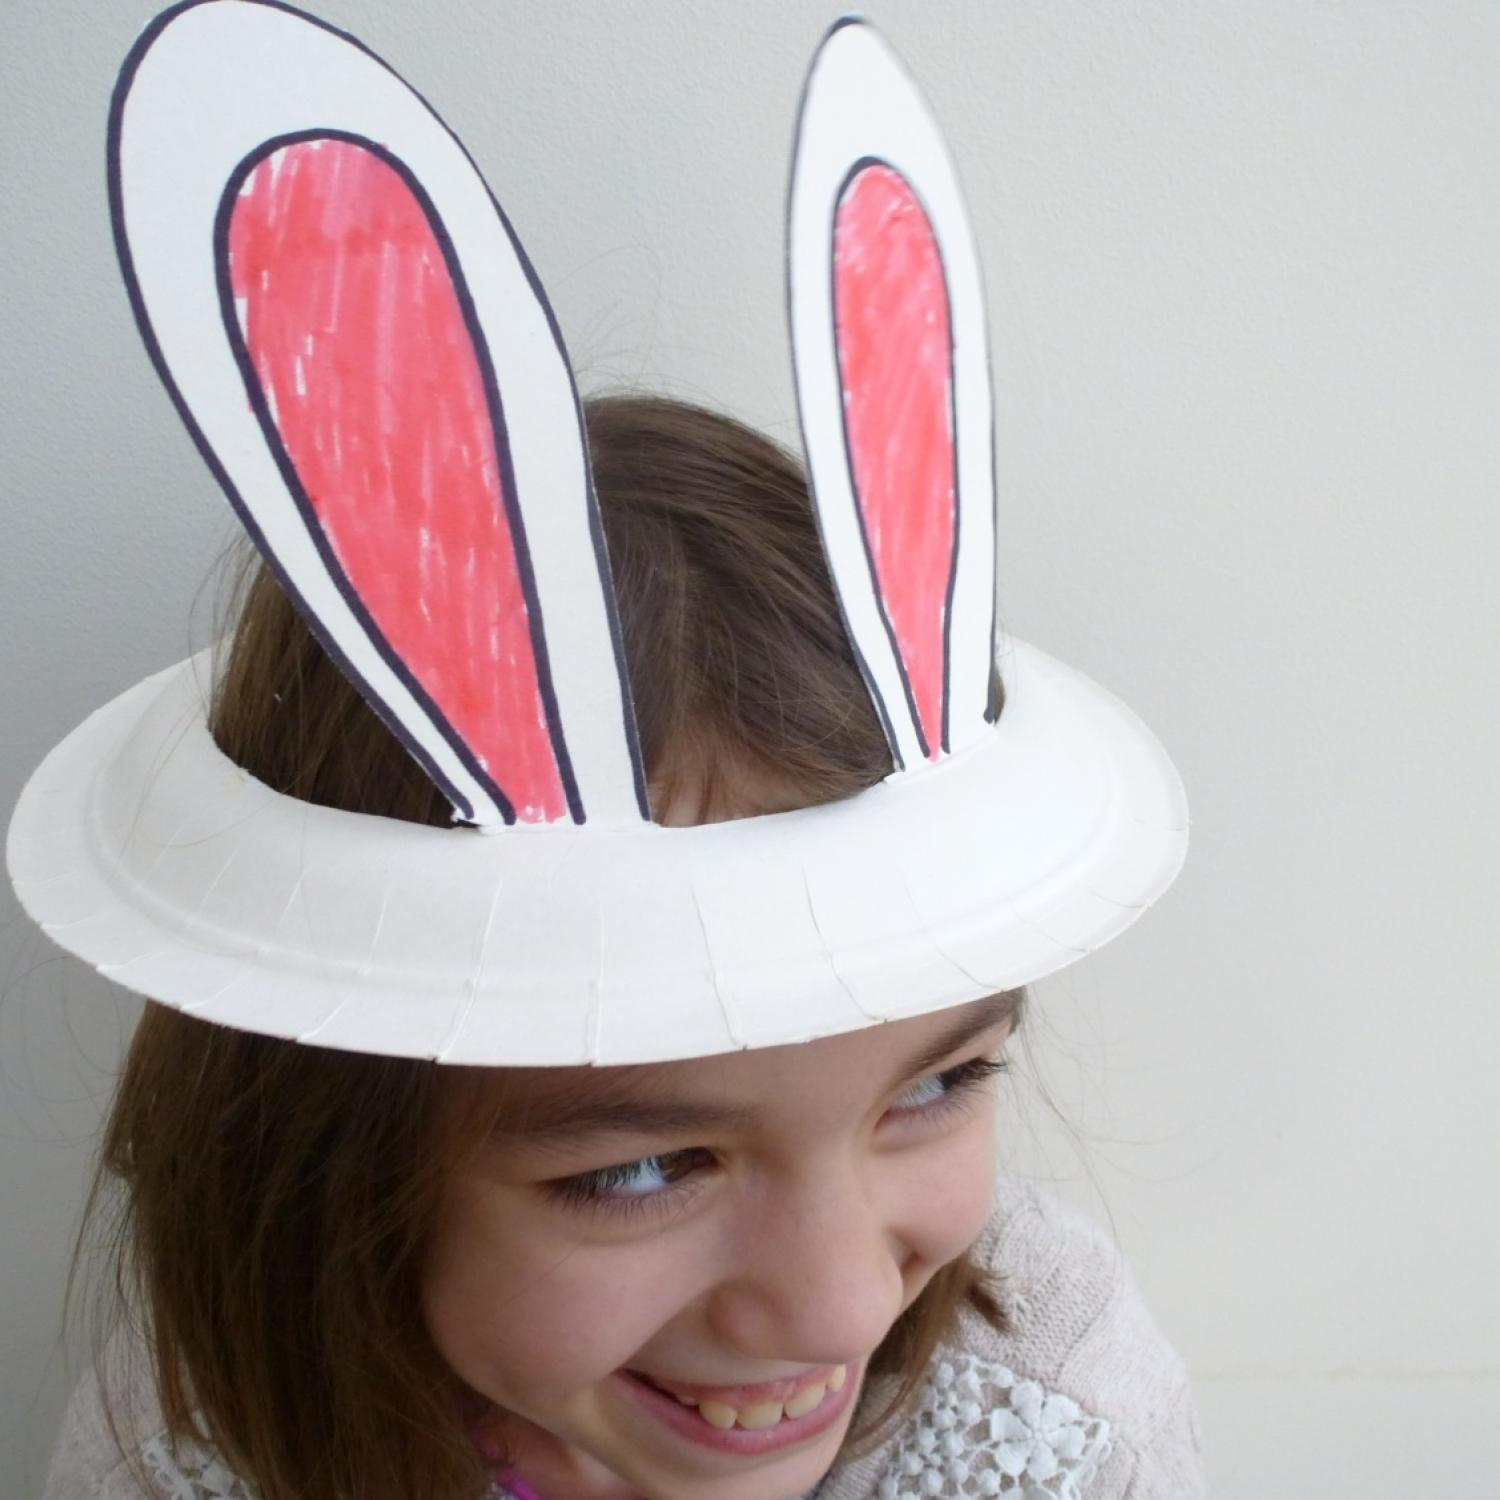 Plastic headbands for crafts - 10 Cute Easter Crafts To Make With A Paper Plate